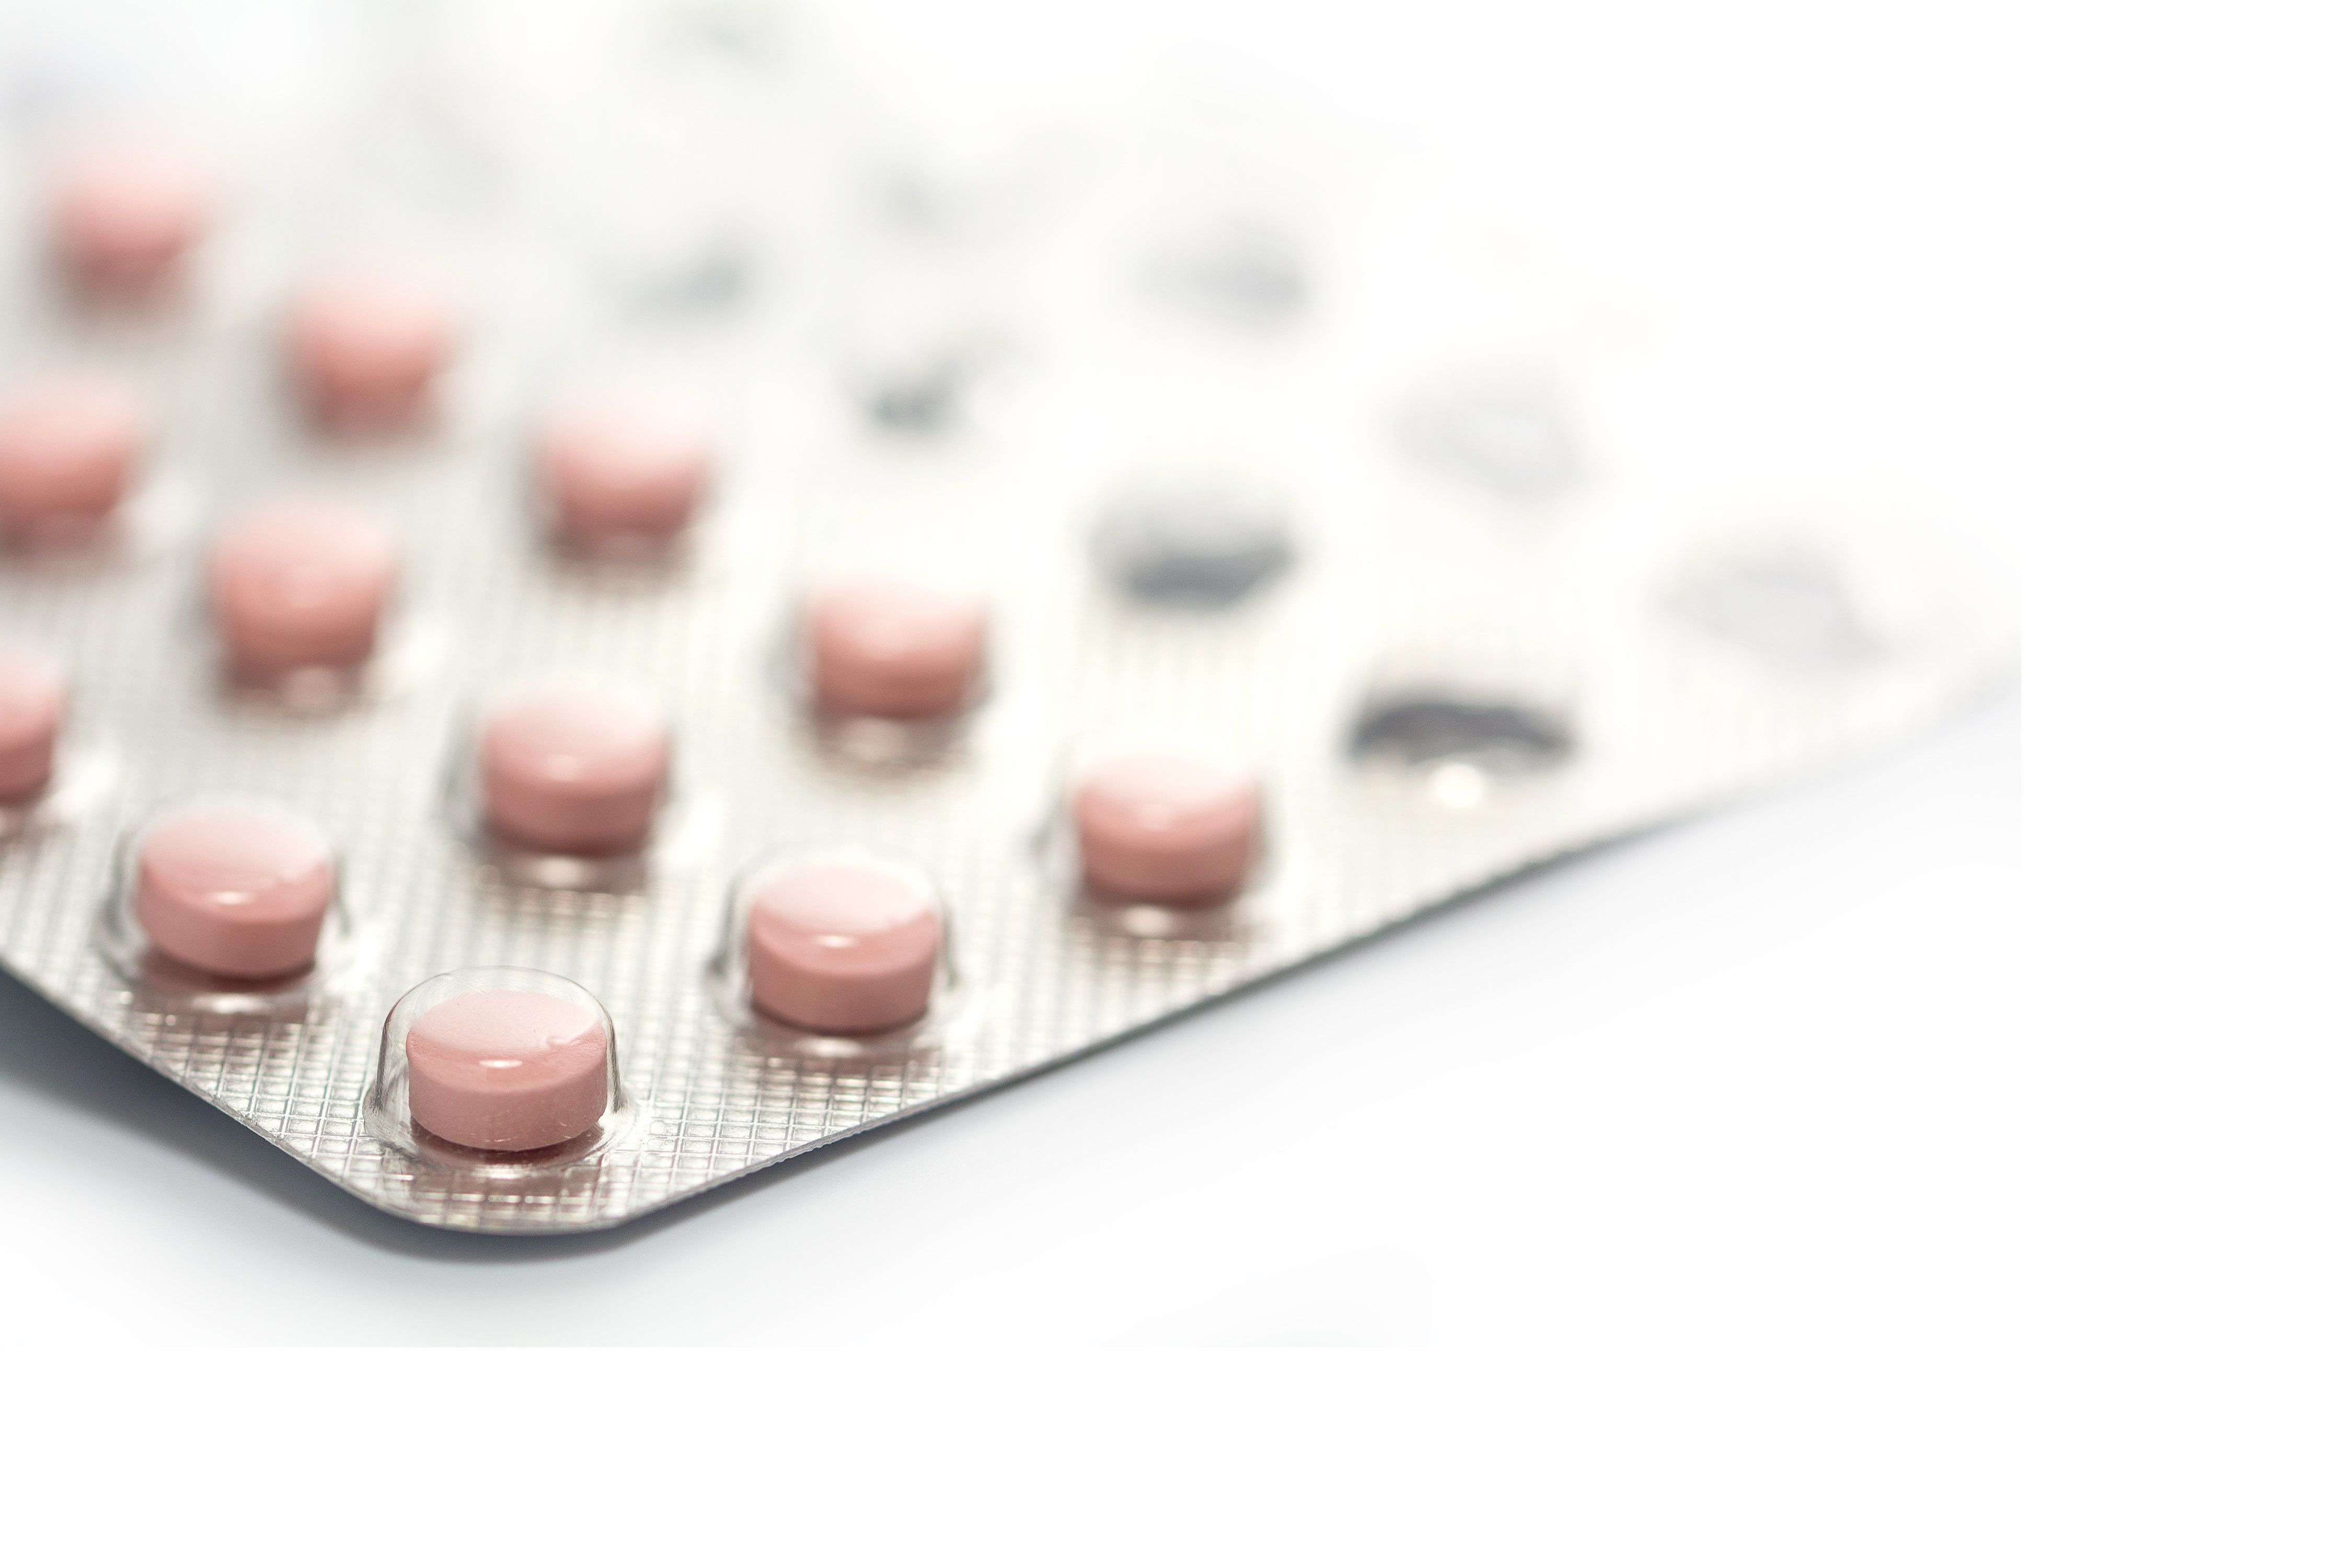 Statins To Reduce Cholesterol May Speed Up Onset Of Parkinson's